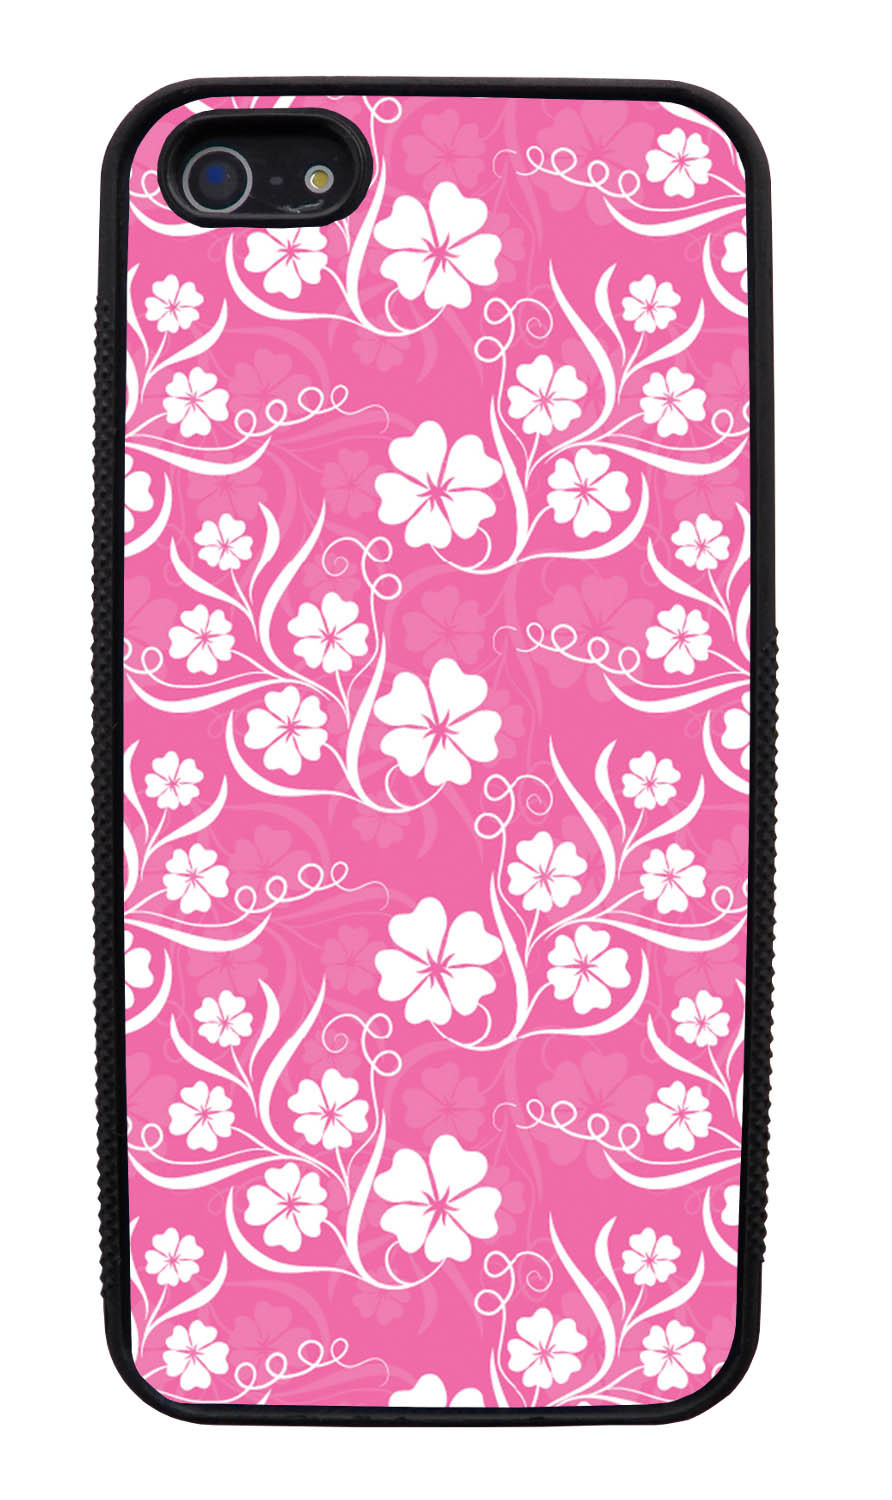 Apple iPhone 5 / 5S Flower Case - White on Pink - Stencil Cutout - Black Slim Rubber Case